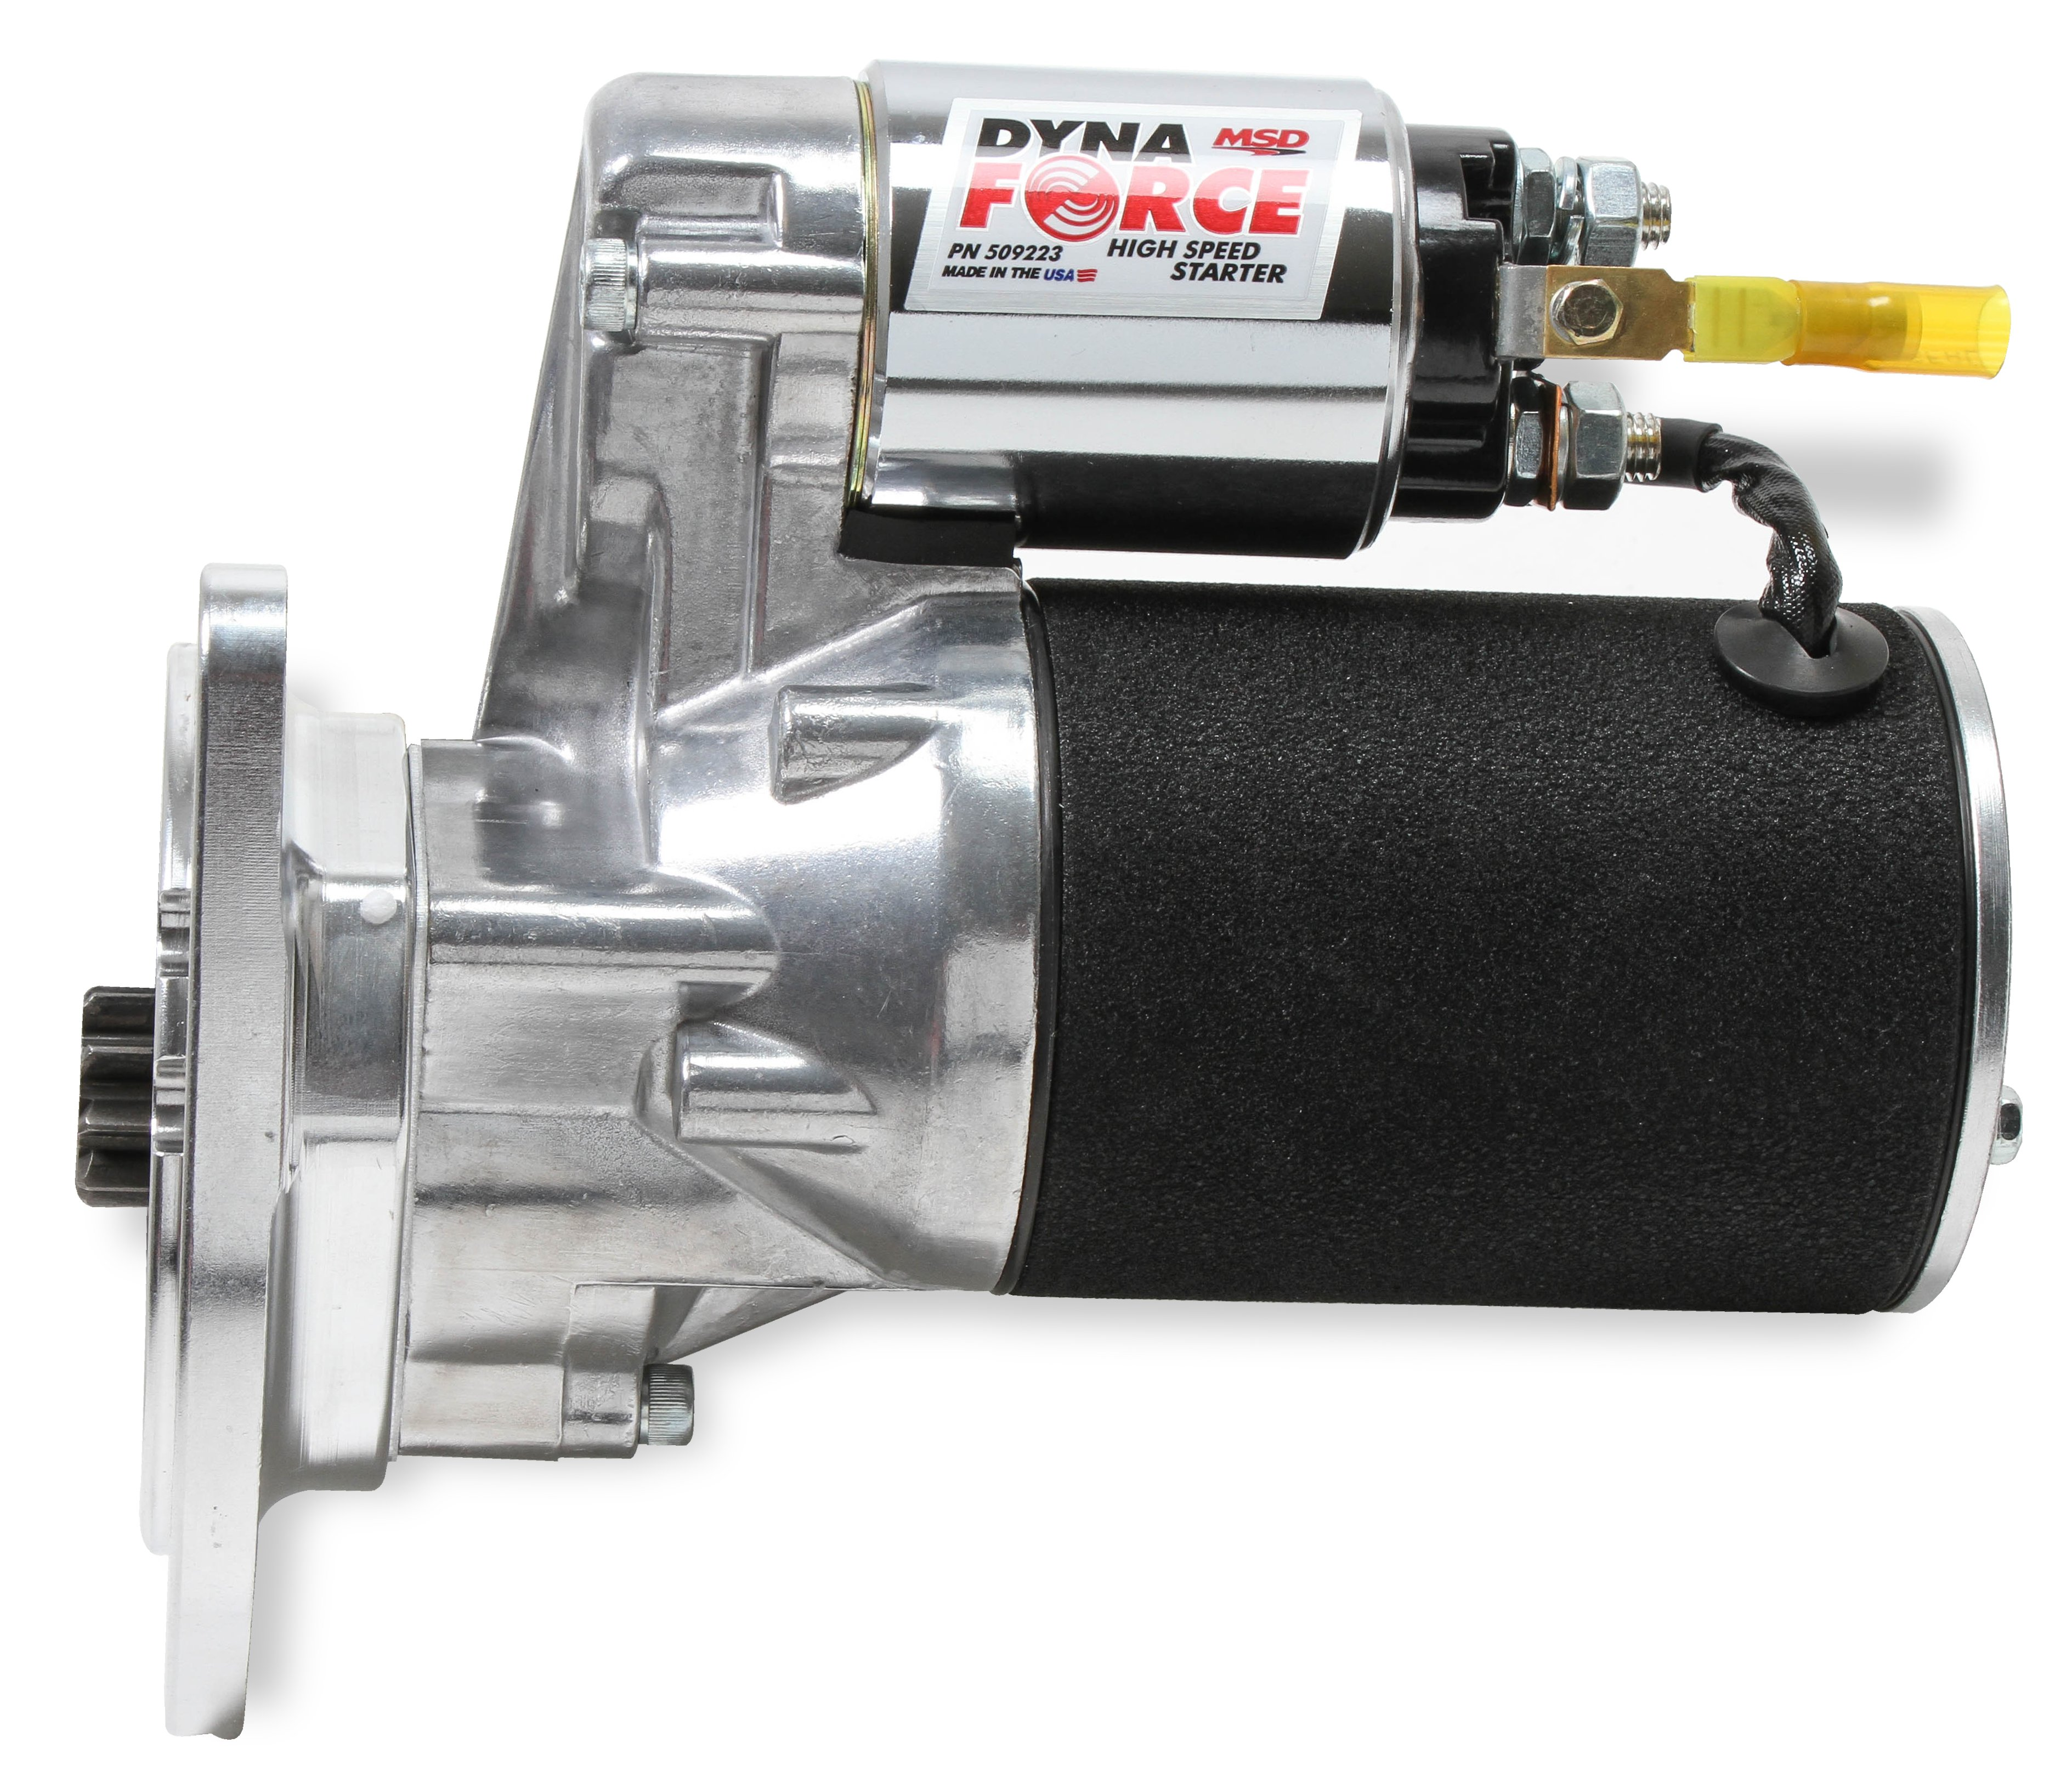 MSD Black DynaForce Starter - Ford 351M, 400, 429 and 460 cubic inch engines